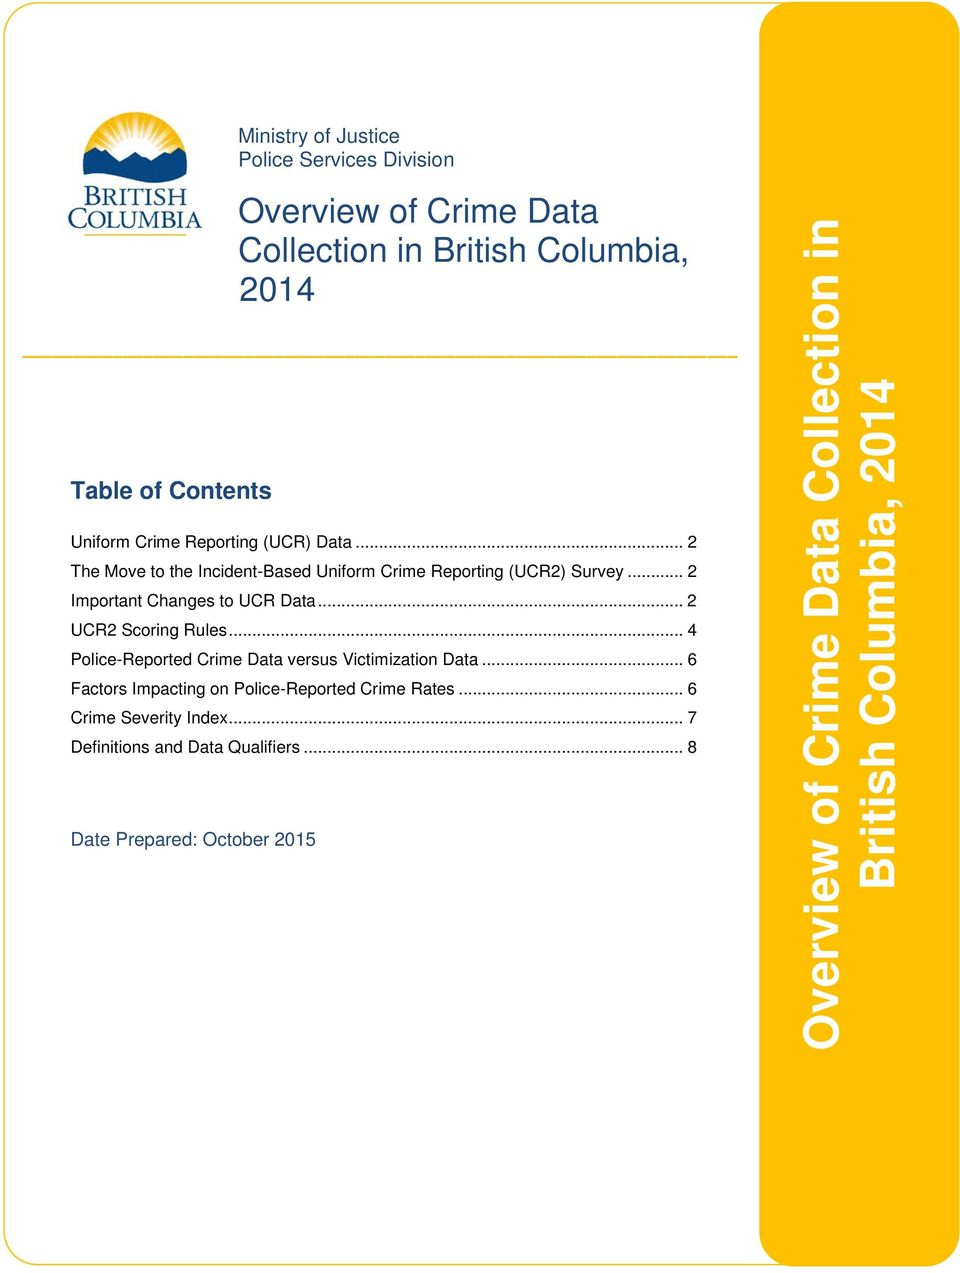 .. 2 UCR2 Scoring Rules... 4 Police-Reported Crime Data versus Victimization Data... 6 Factors Impacting on Police-Reported Crime Rates.